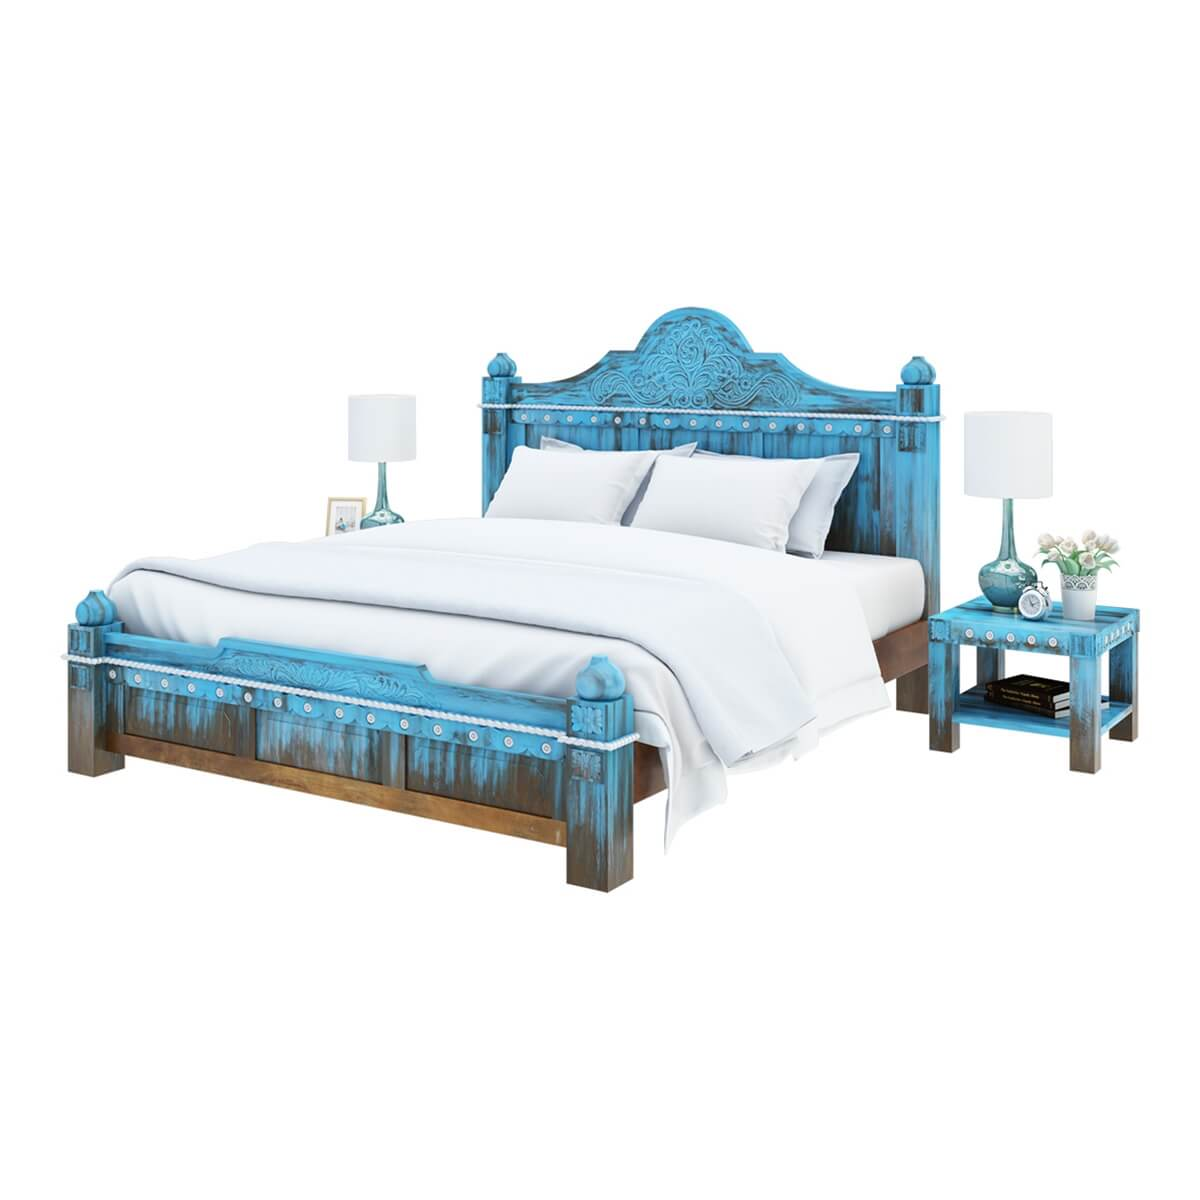 Hand Carved Bed: Empire Blue Dawn Solid Mango Wood Hand Carved Platform Bed